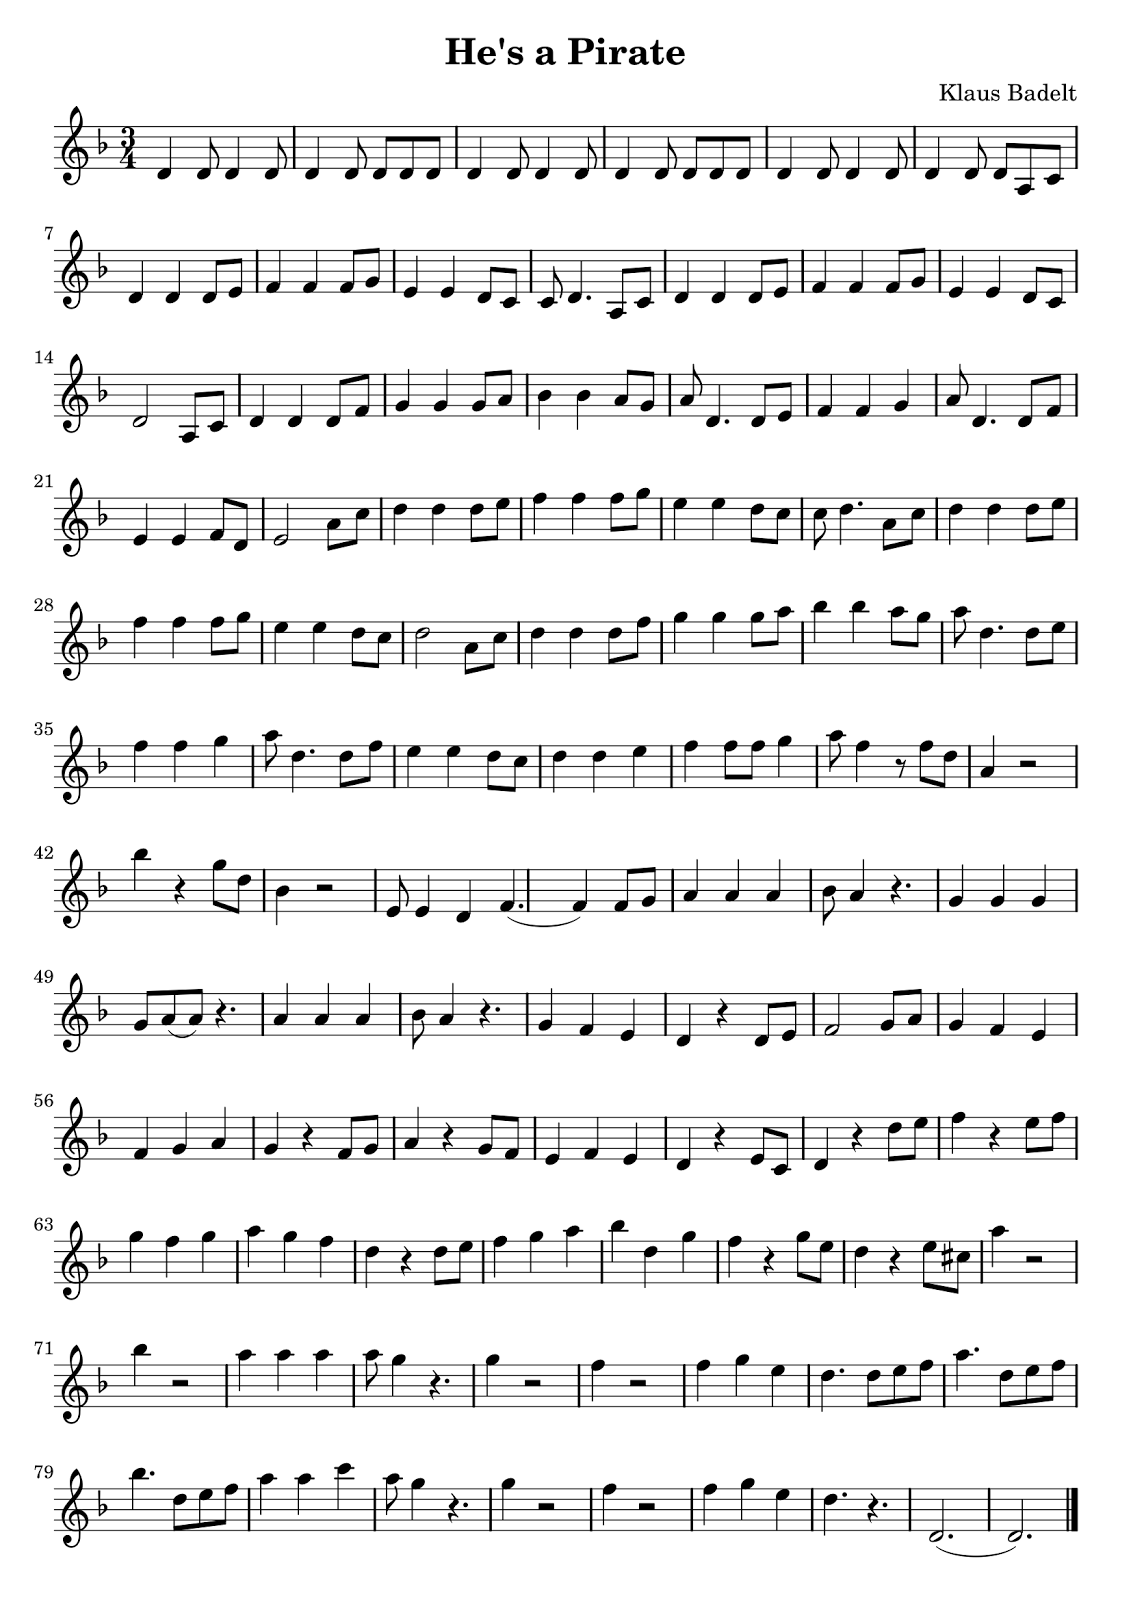 Sheet Music PDF: He's a Pirate LilyPond Source: He's a Pirate